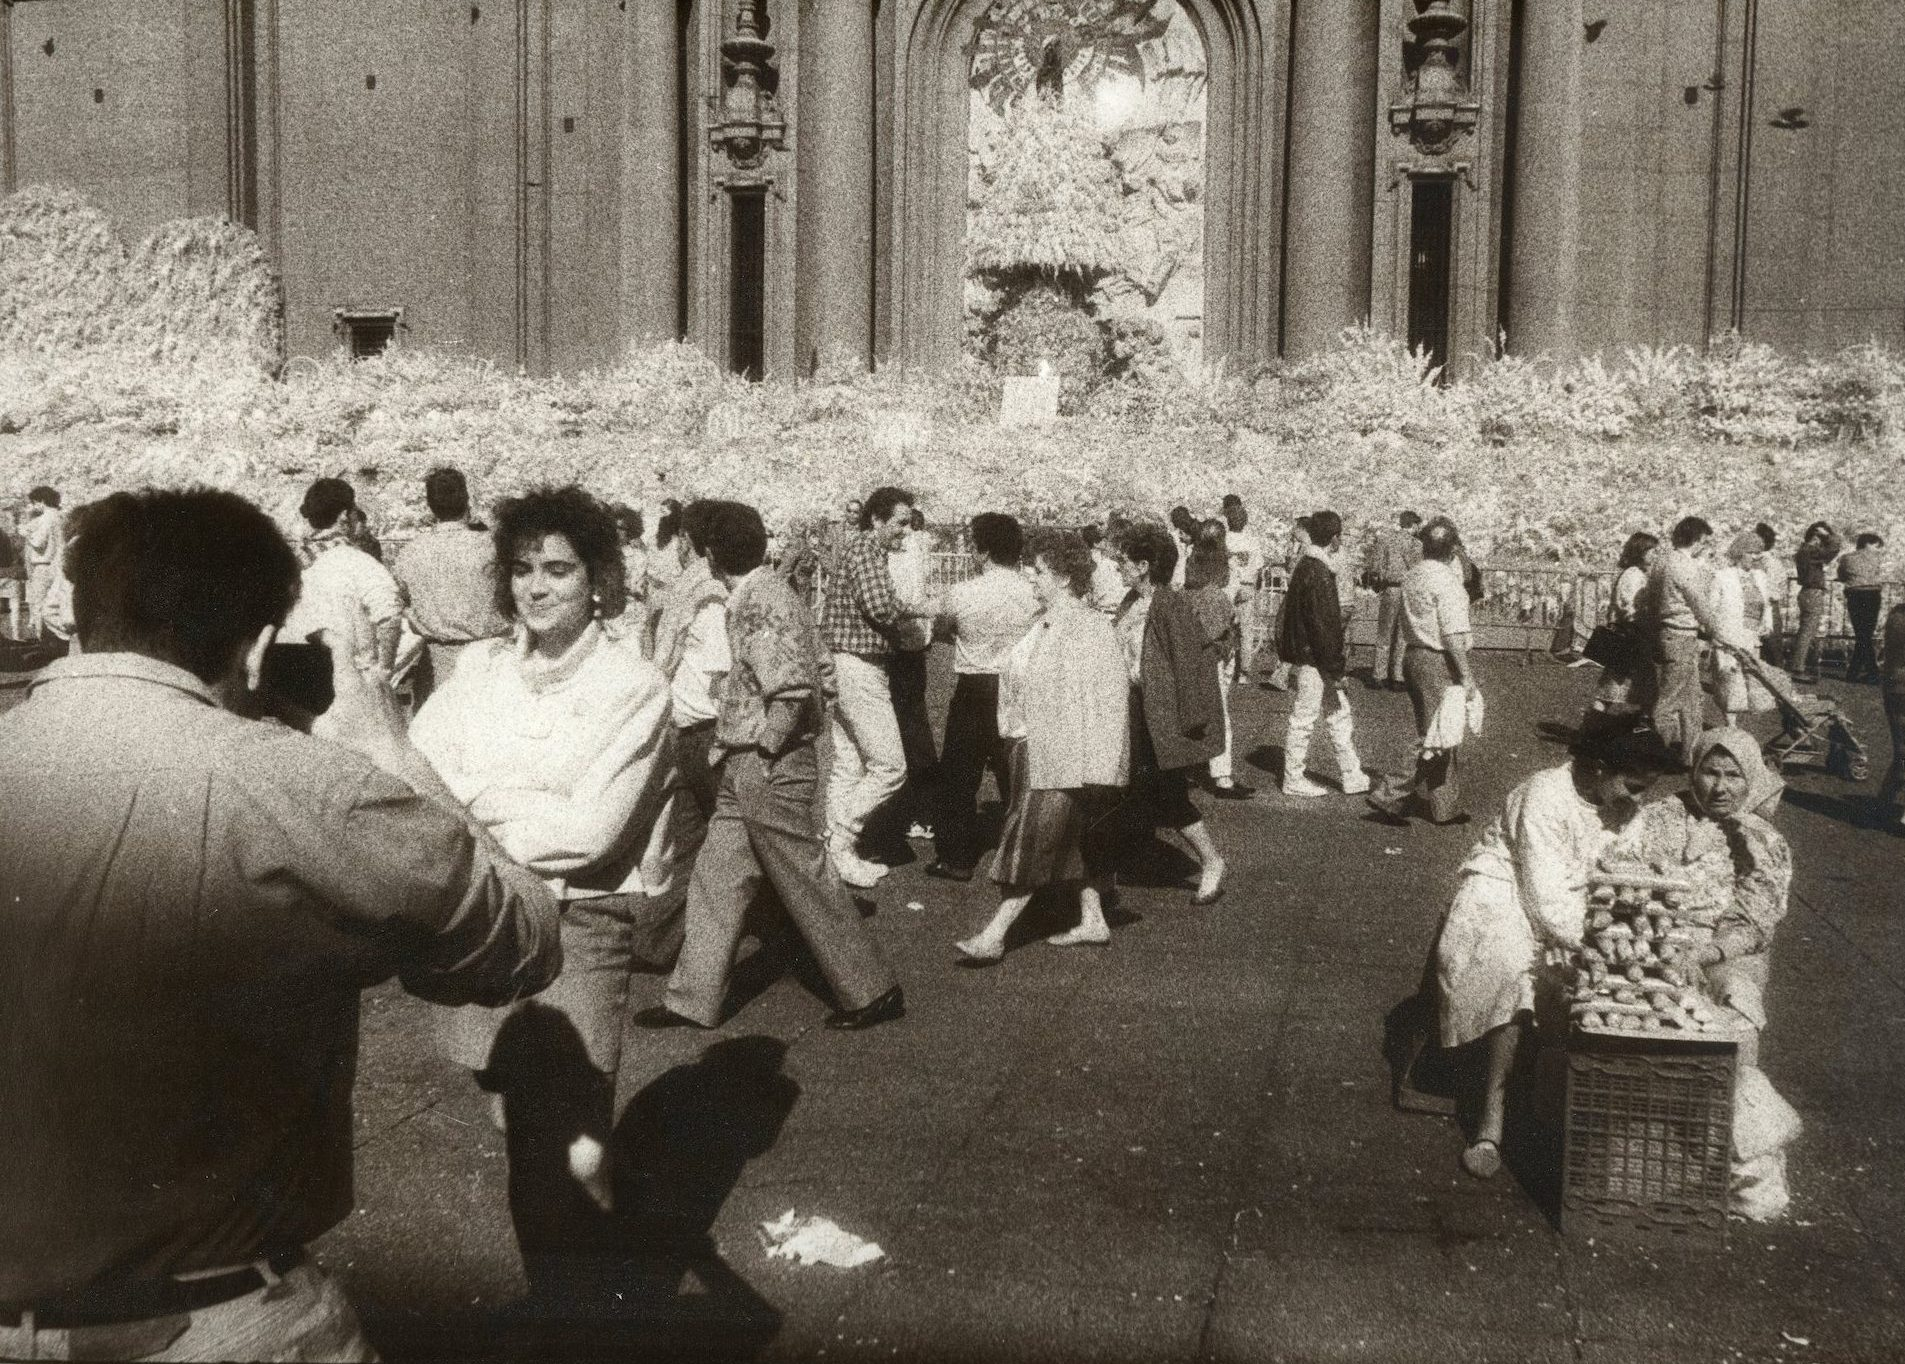 <center>FESTIVAL OF PILAR, ZARAGOZA, SPAIN - (INFRA-RED)</center>